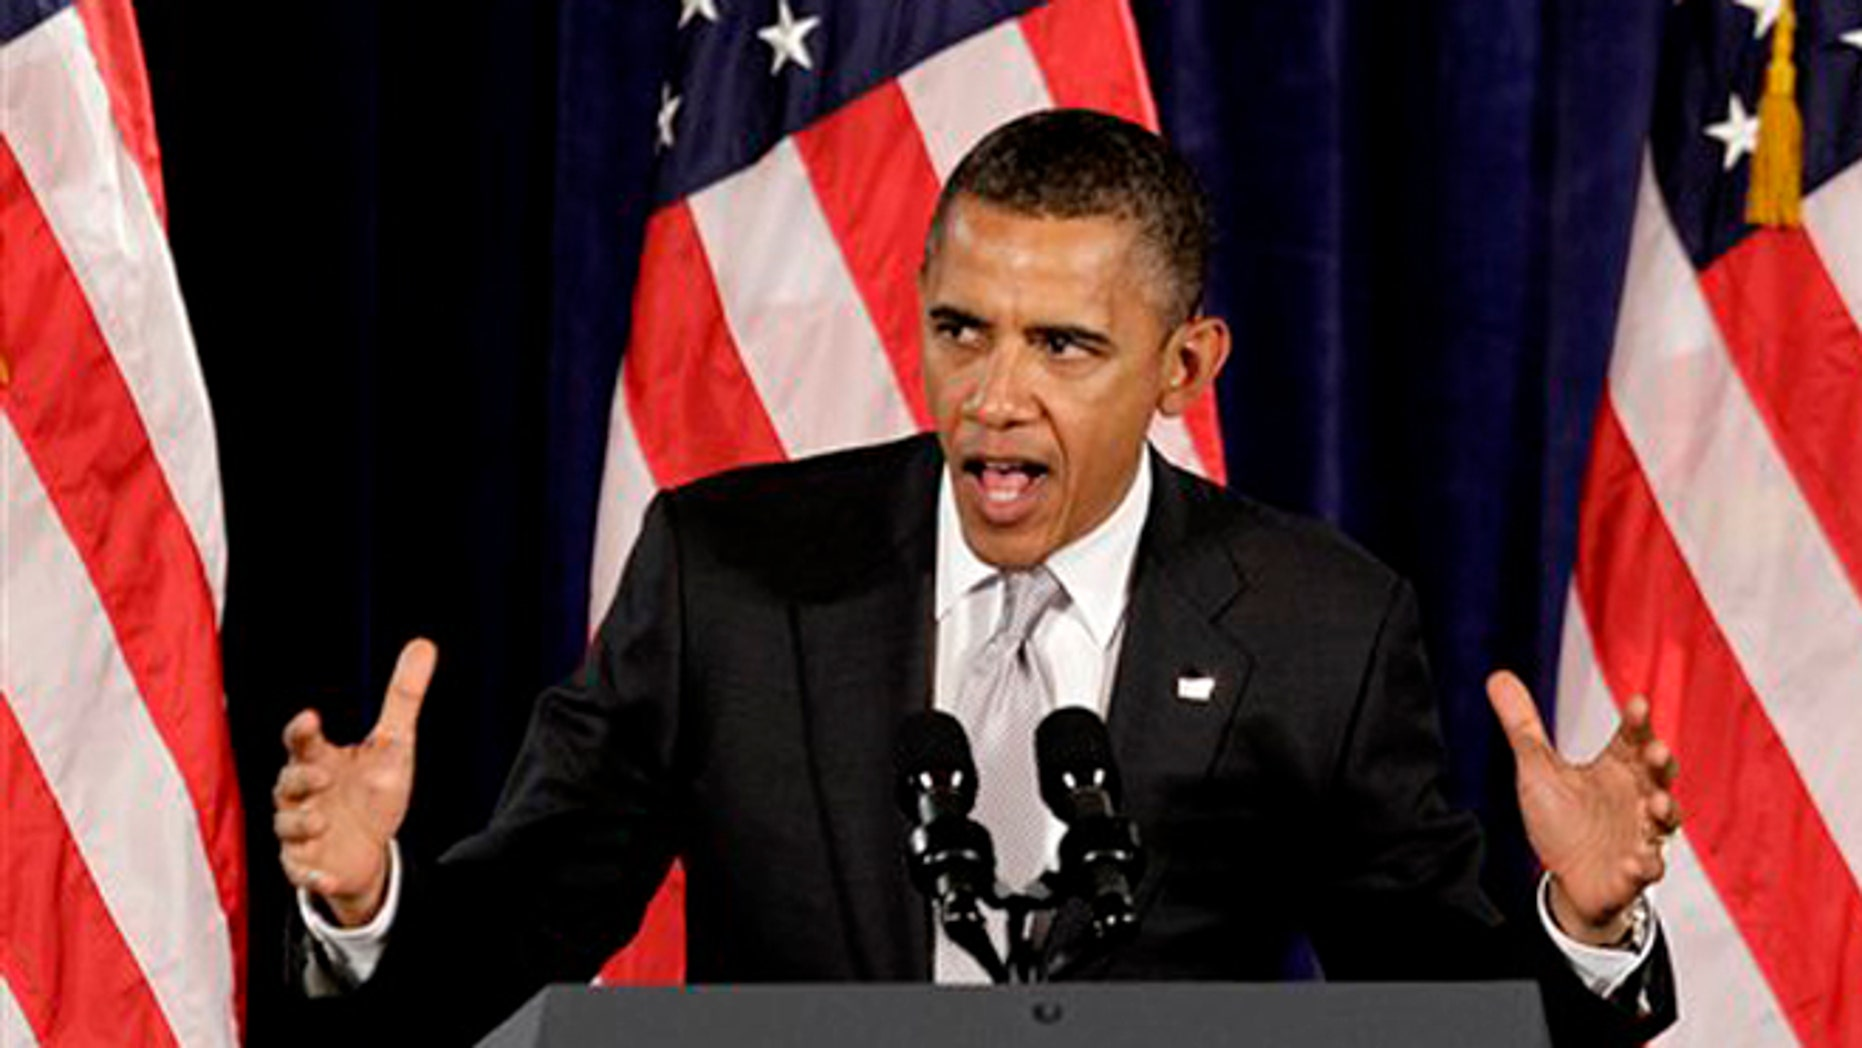 Tuesday, June 26, 2012: President Barack Obama speaks at a fundraising event  in Atlanta.